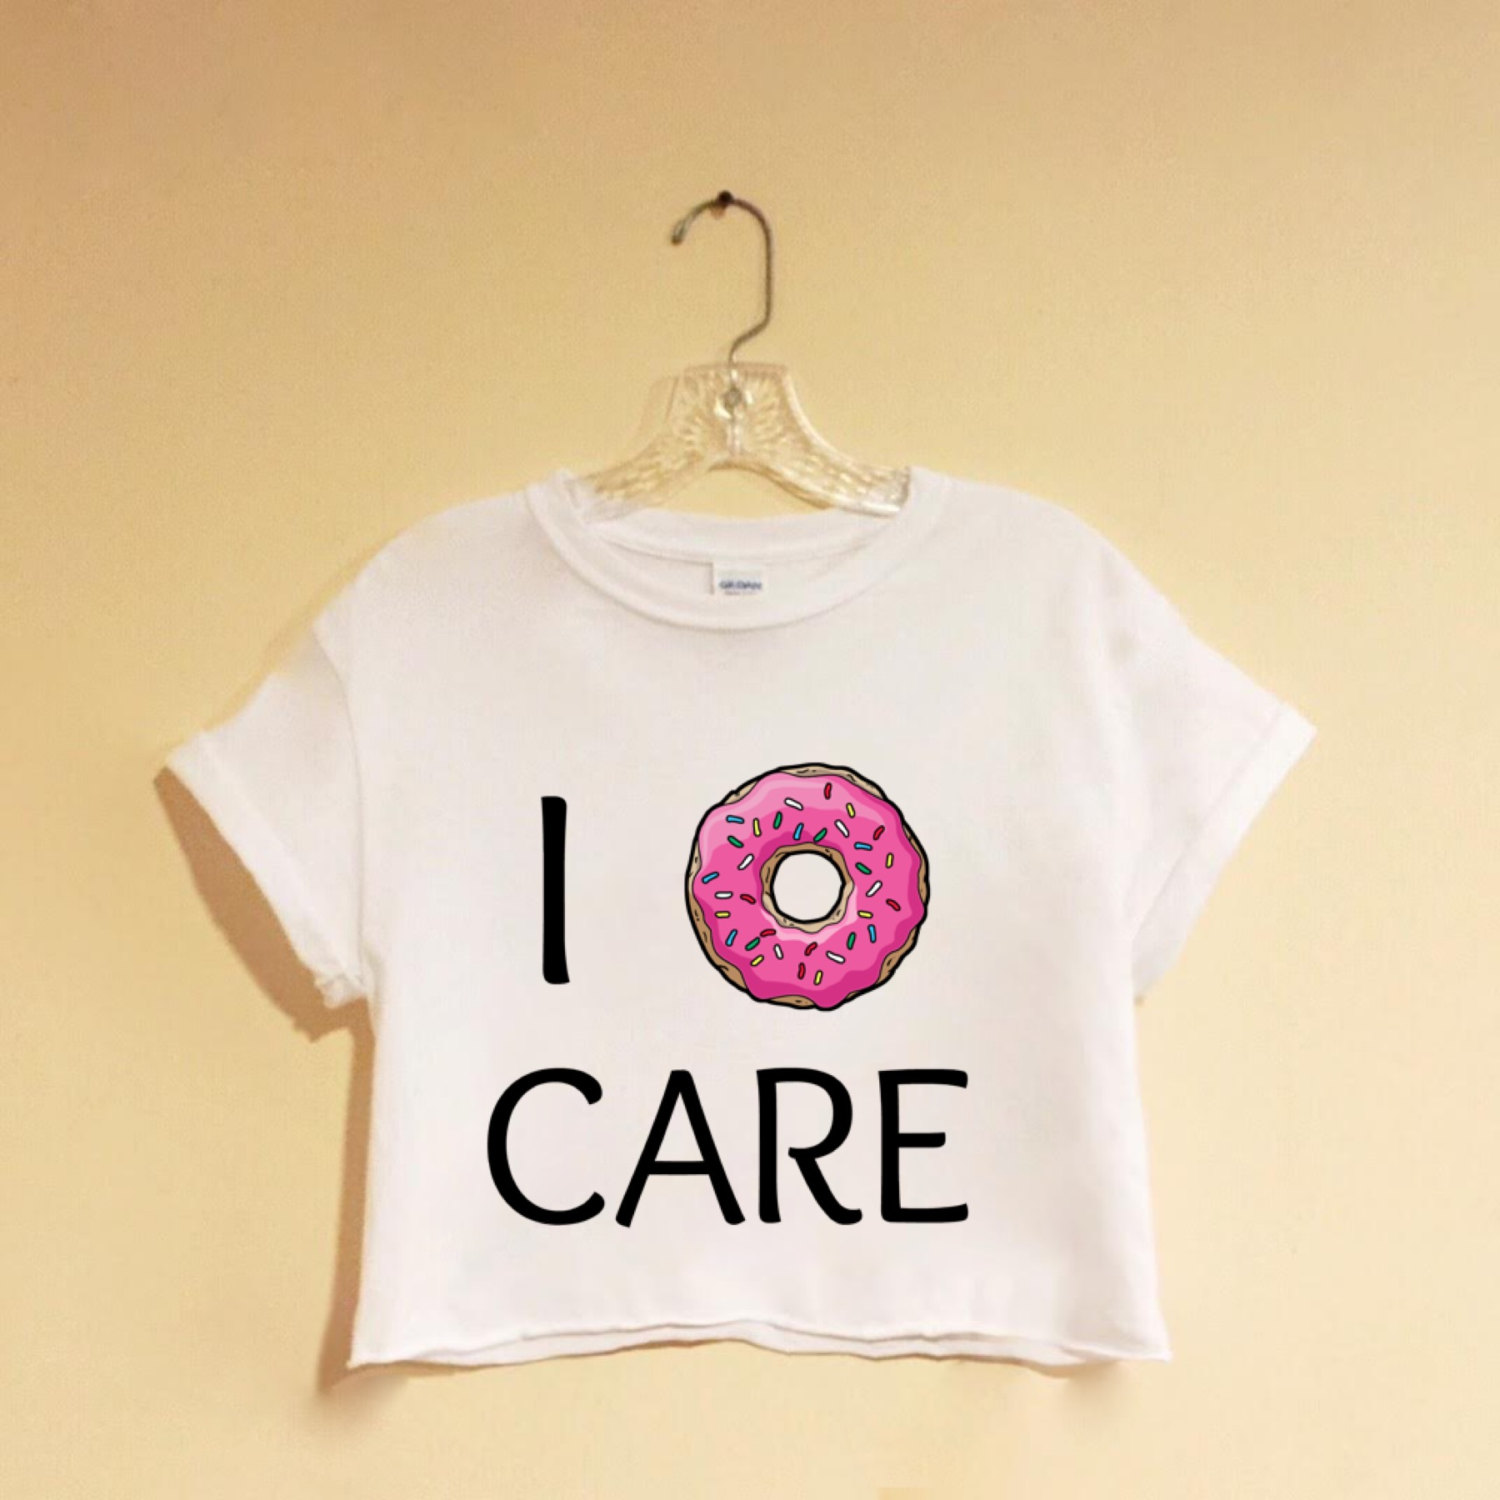 6a103ef6adbf0 I Donghnut Care - White Crop Top - Screen Printed - Hipster - Tumblr ...